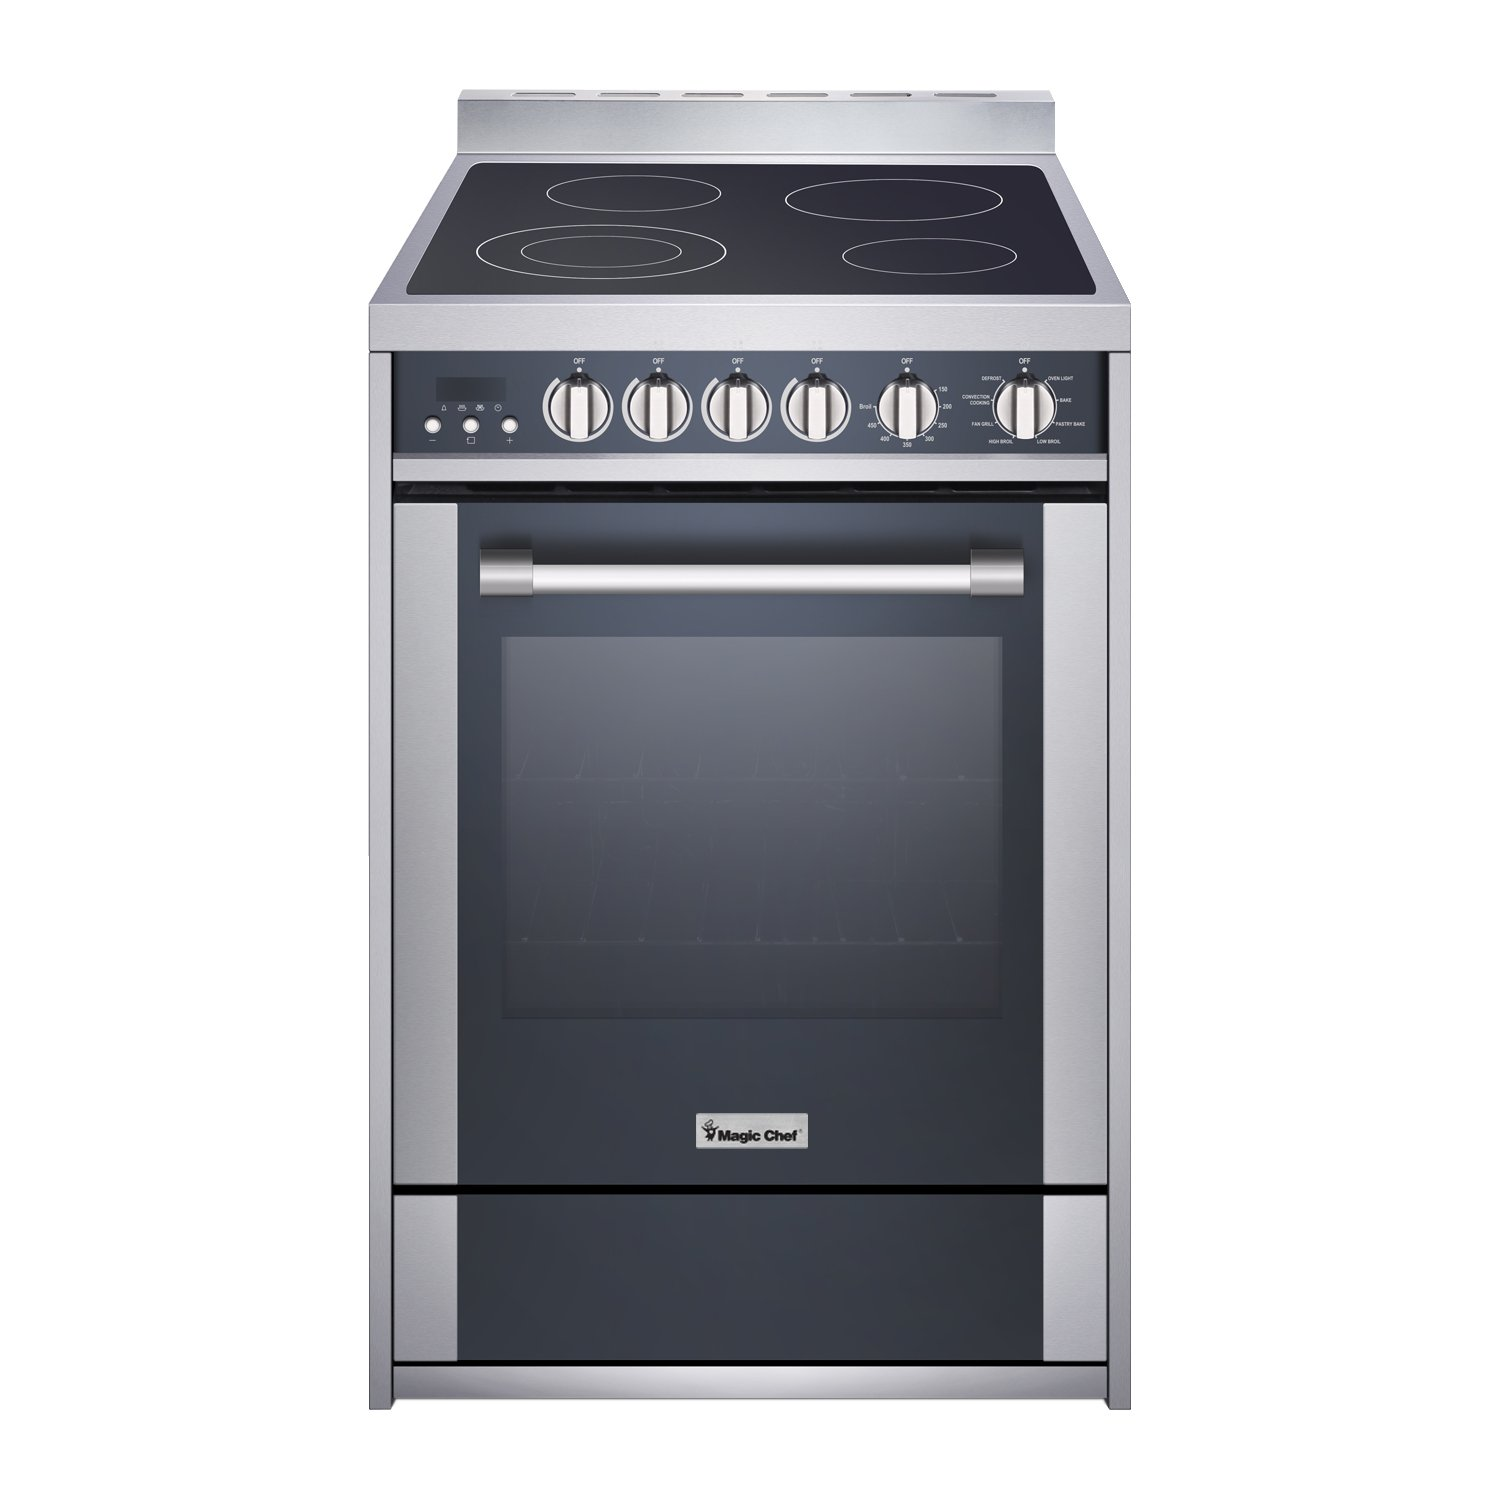 "Magic Chef Freestanding Oven MCSRE24S 24"" 2.2 cu. ft. Electric Range with Convection, Stainless Steel"